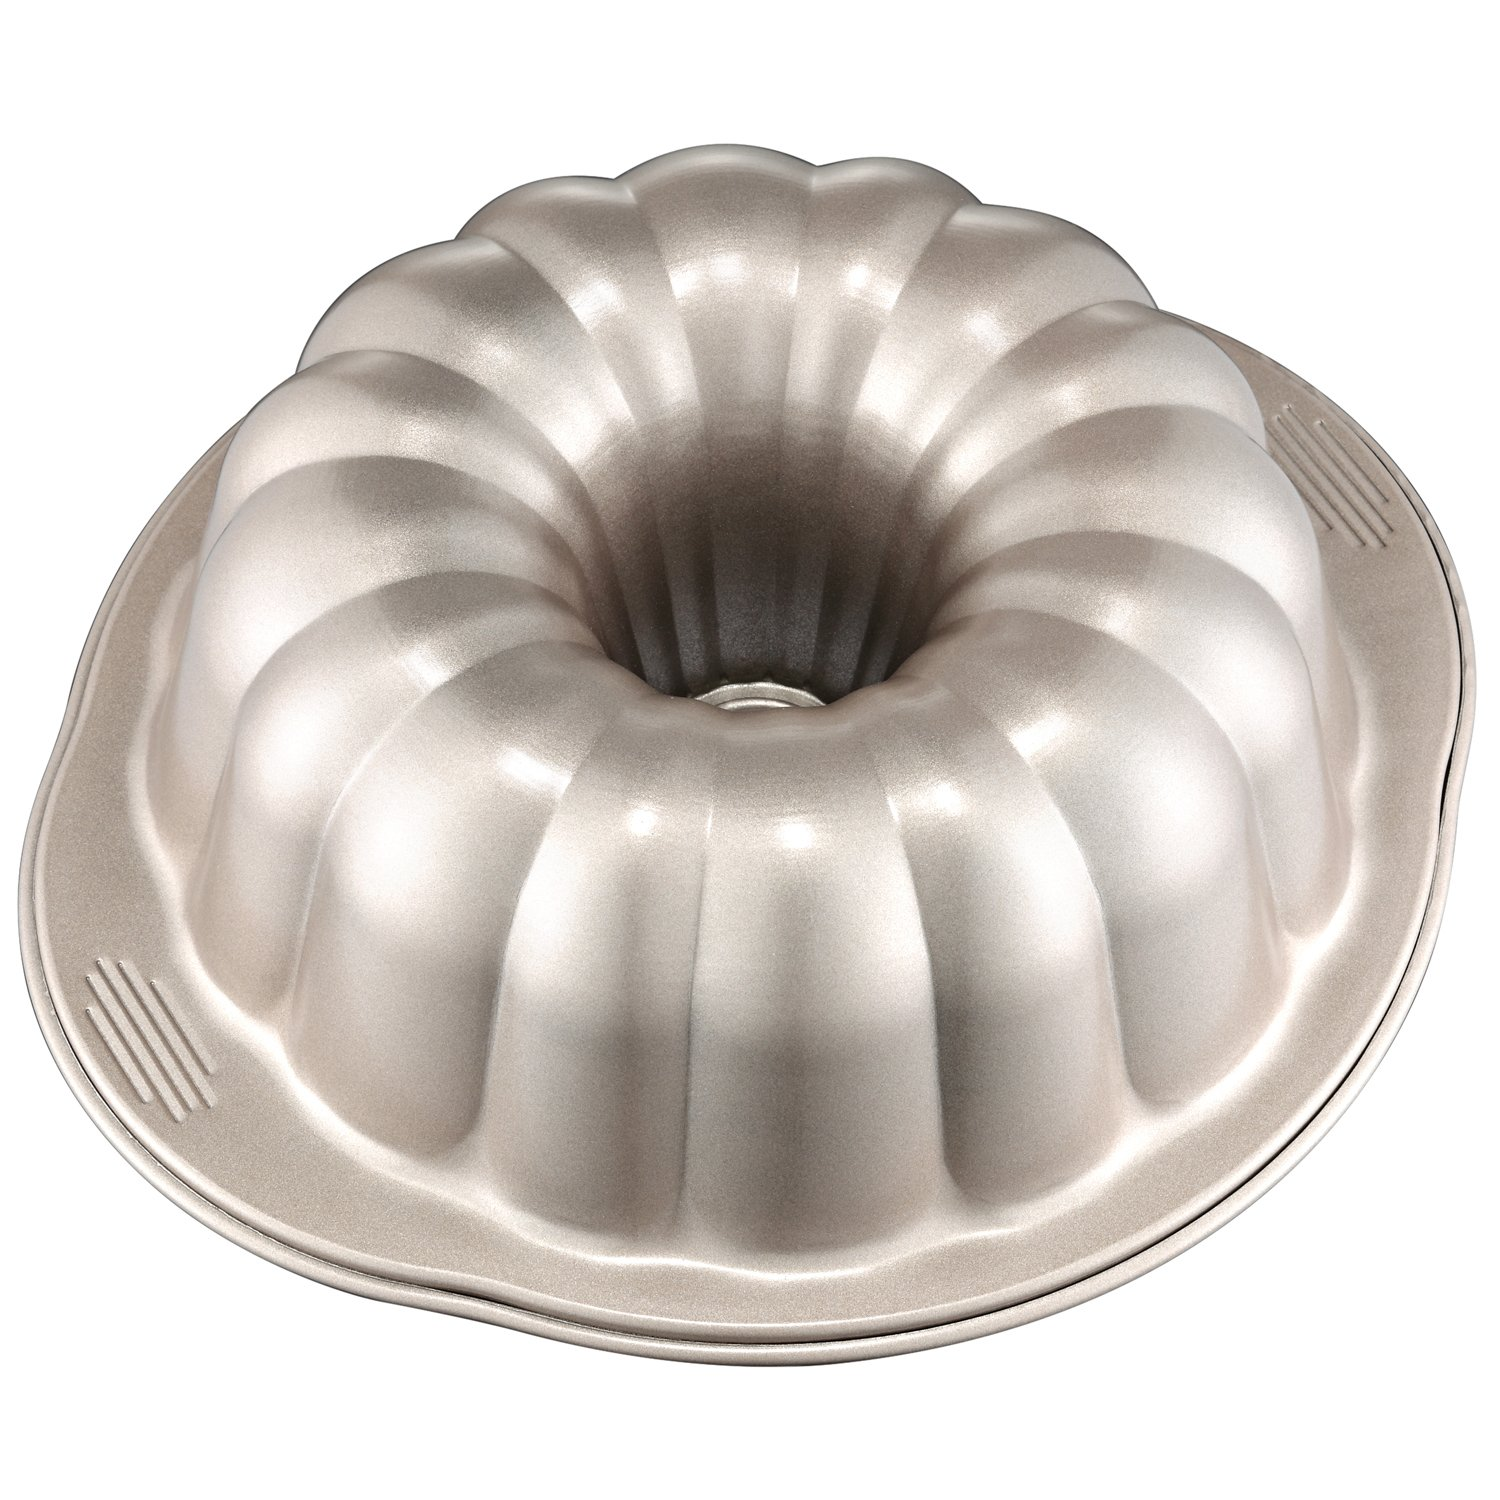 CHEFMADE 10-Inch Pumpkin-shaped Bundt Pan, Non-stick Carbon Steel Banquet Cake Mold, FDA Approved for Oven Baking (Champagne Gold)